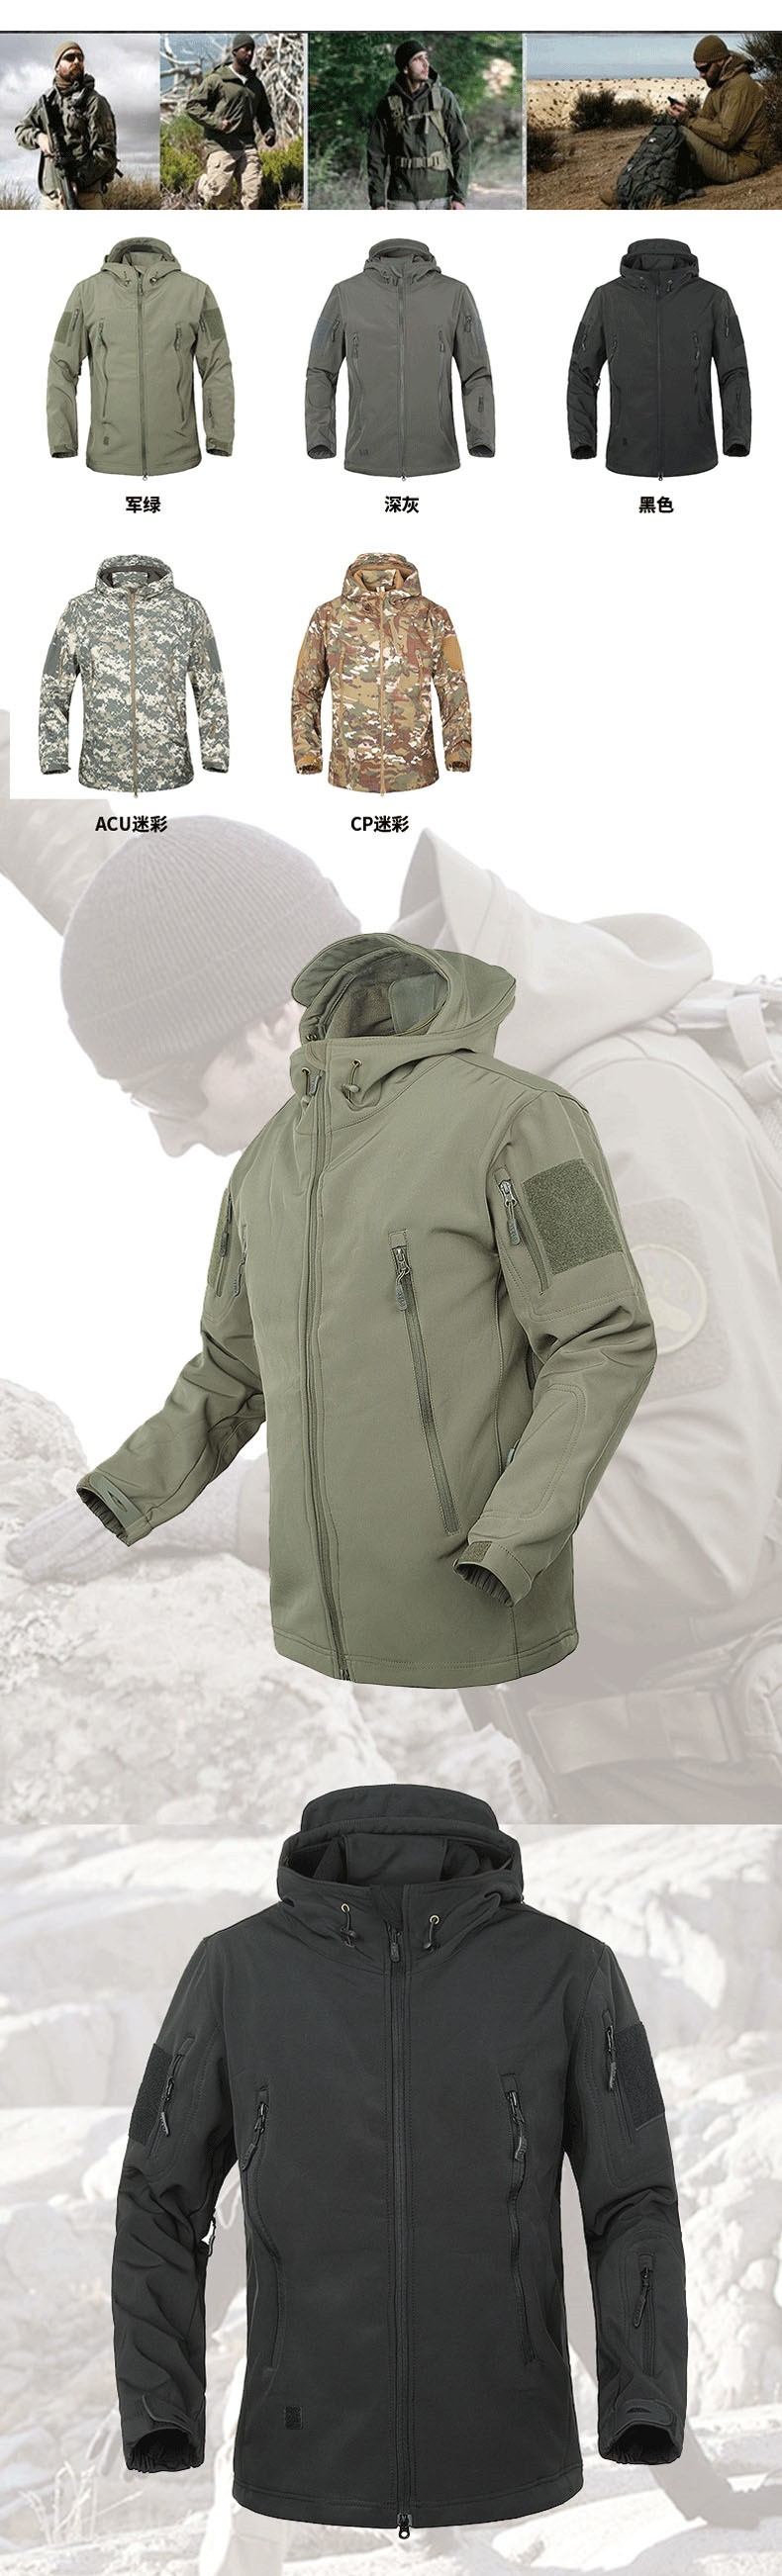 High qualtiy TAD shark skin thermal man winter jacket for hunting military training